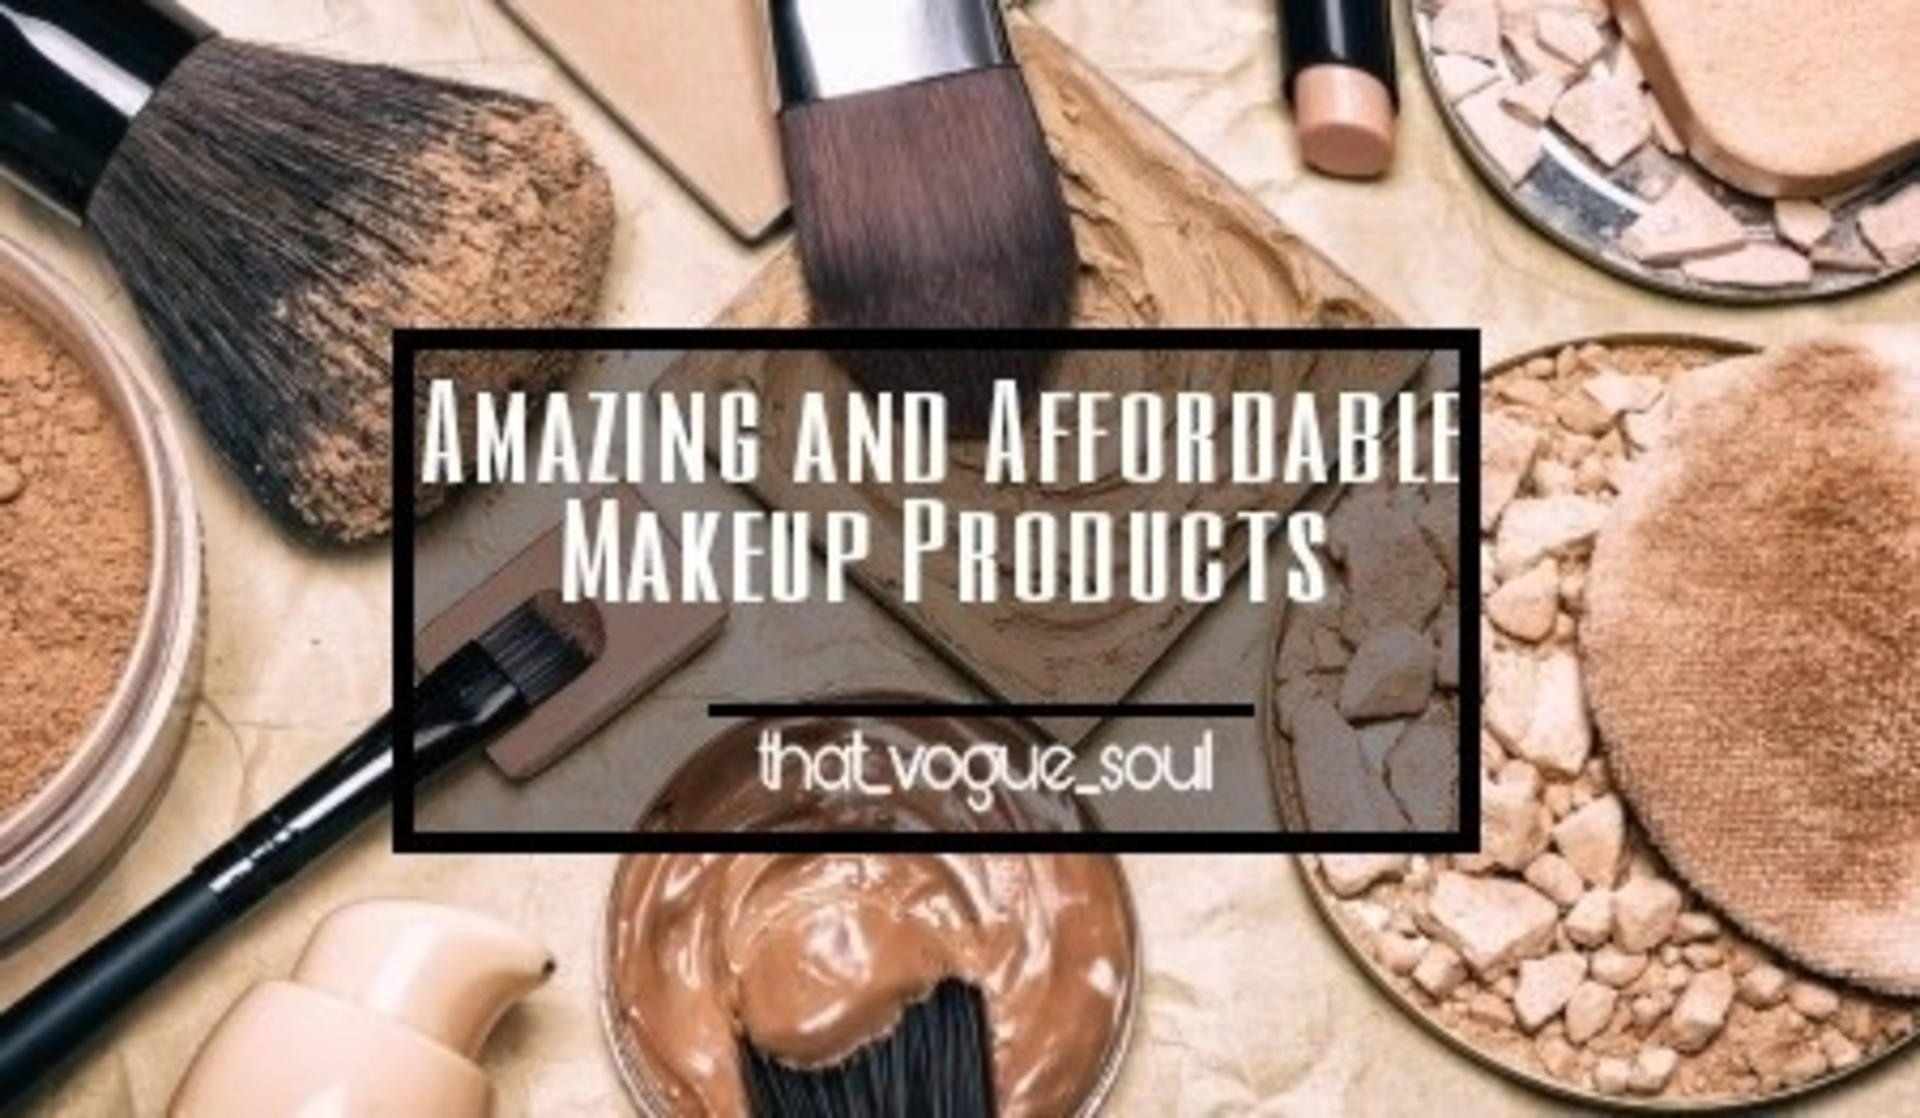 AMAZING AND AFFORDABLE MAKEUP PRODUCTS image